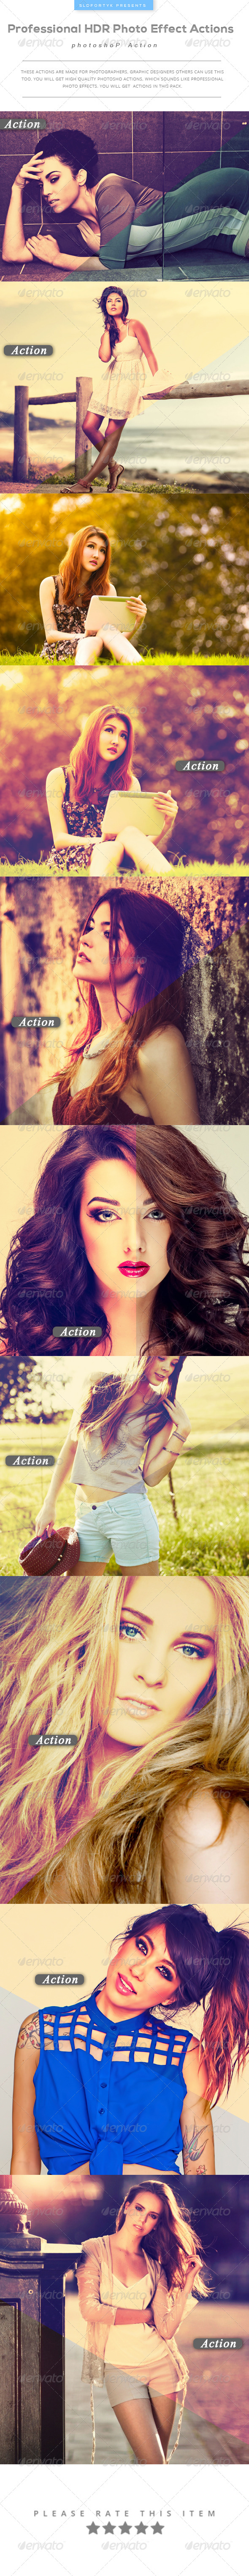 GraphicRiver Professional HDR Photo Effect Actions 8375091